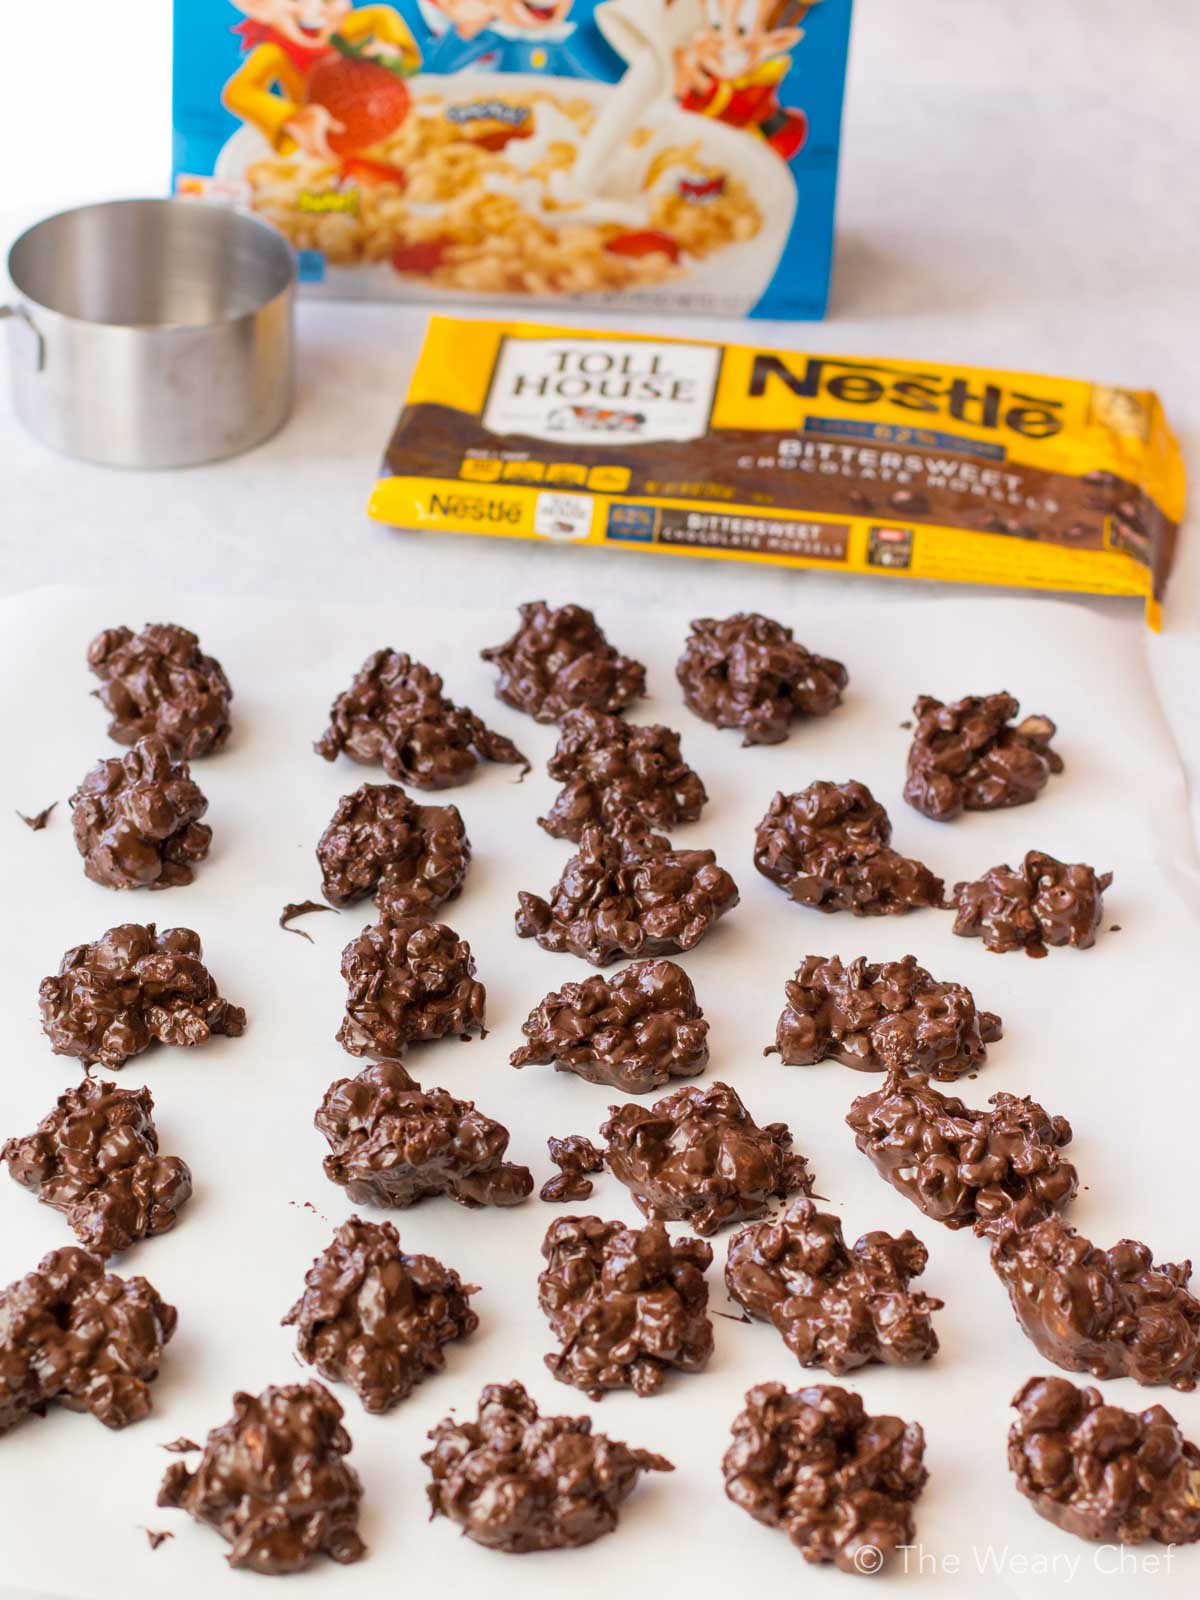 These crispy, crunchy Dark Chocolate Peanut Clusters are fun and easy to make. Perfect for holiday gifts!